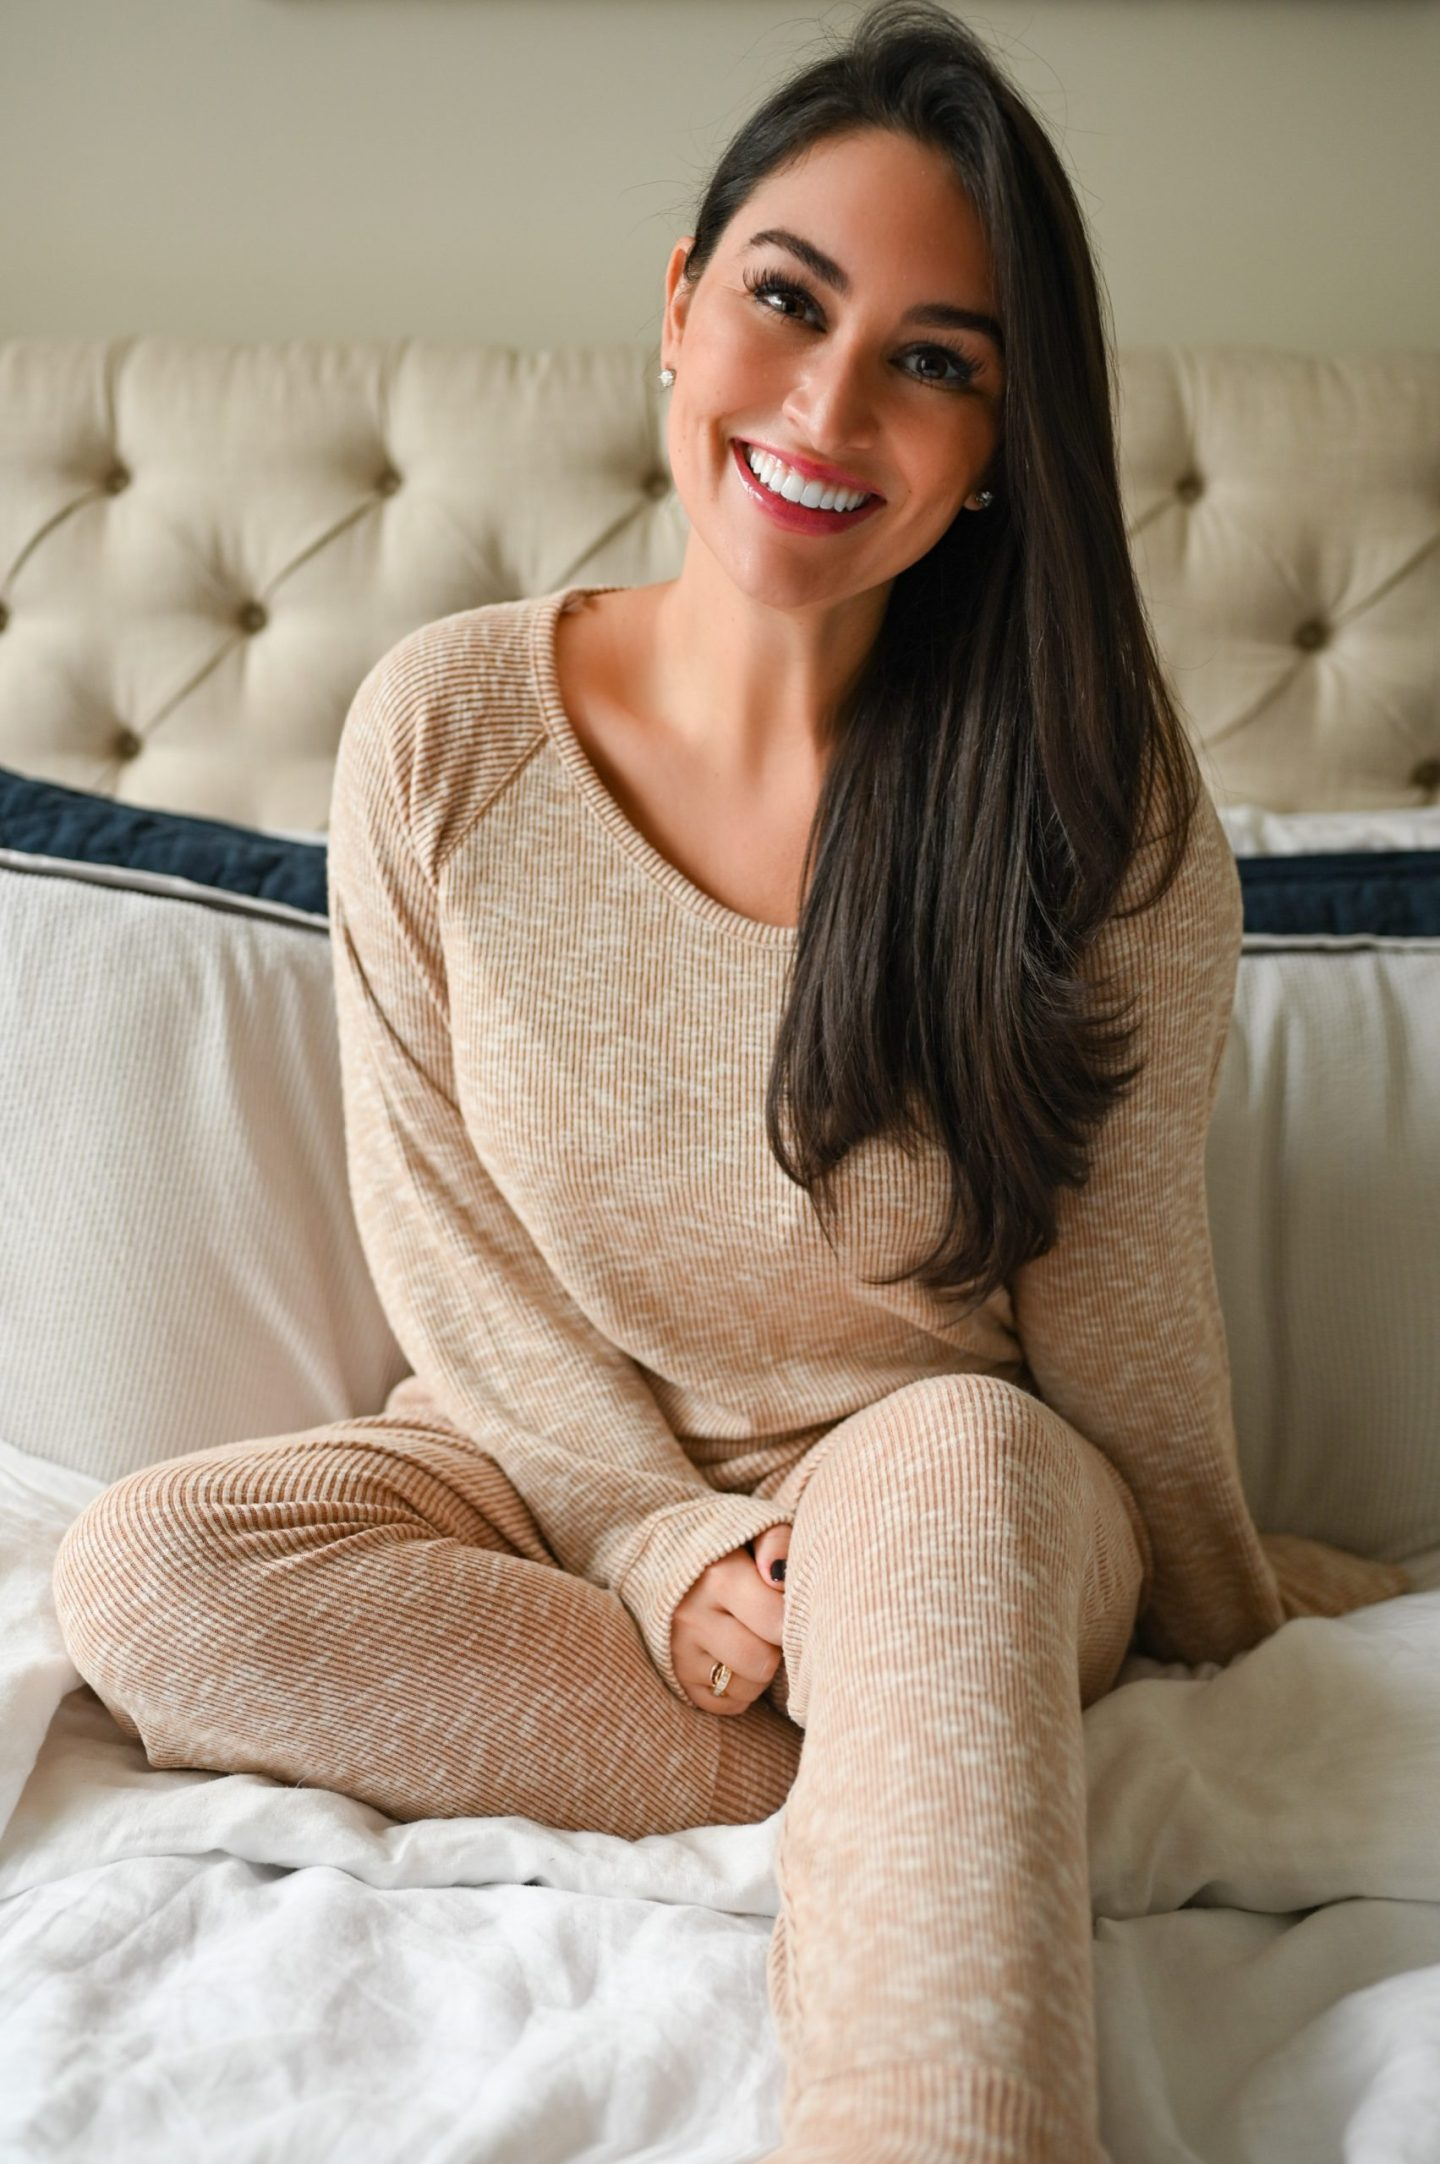 Getting Cozy: Winter Pajamas